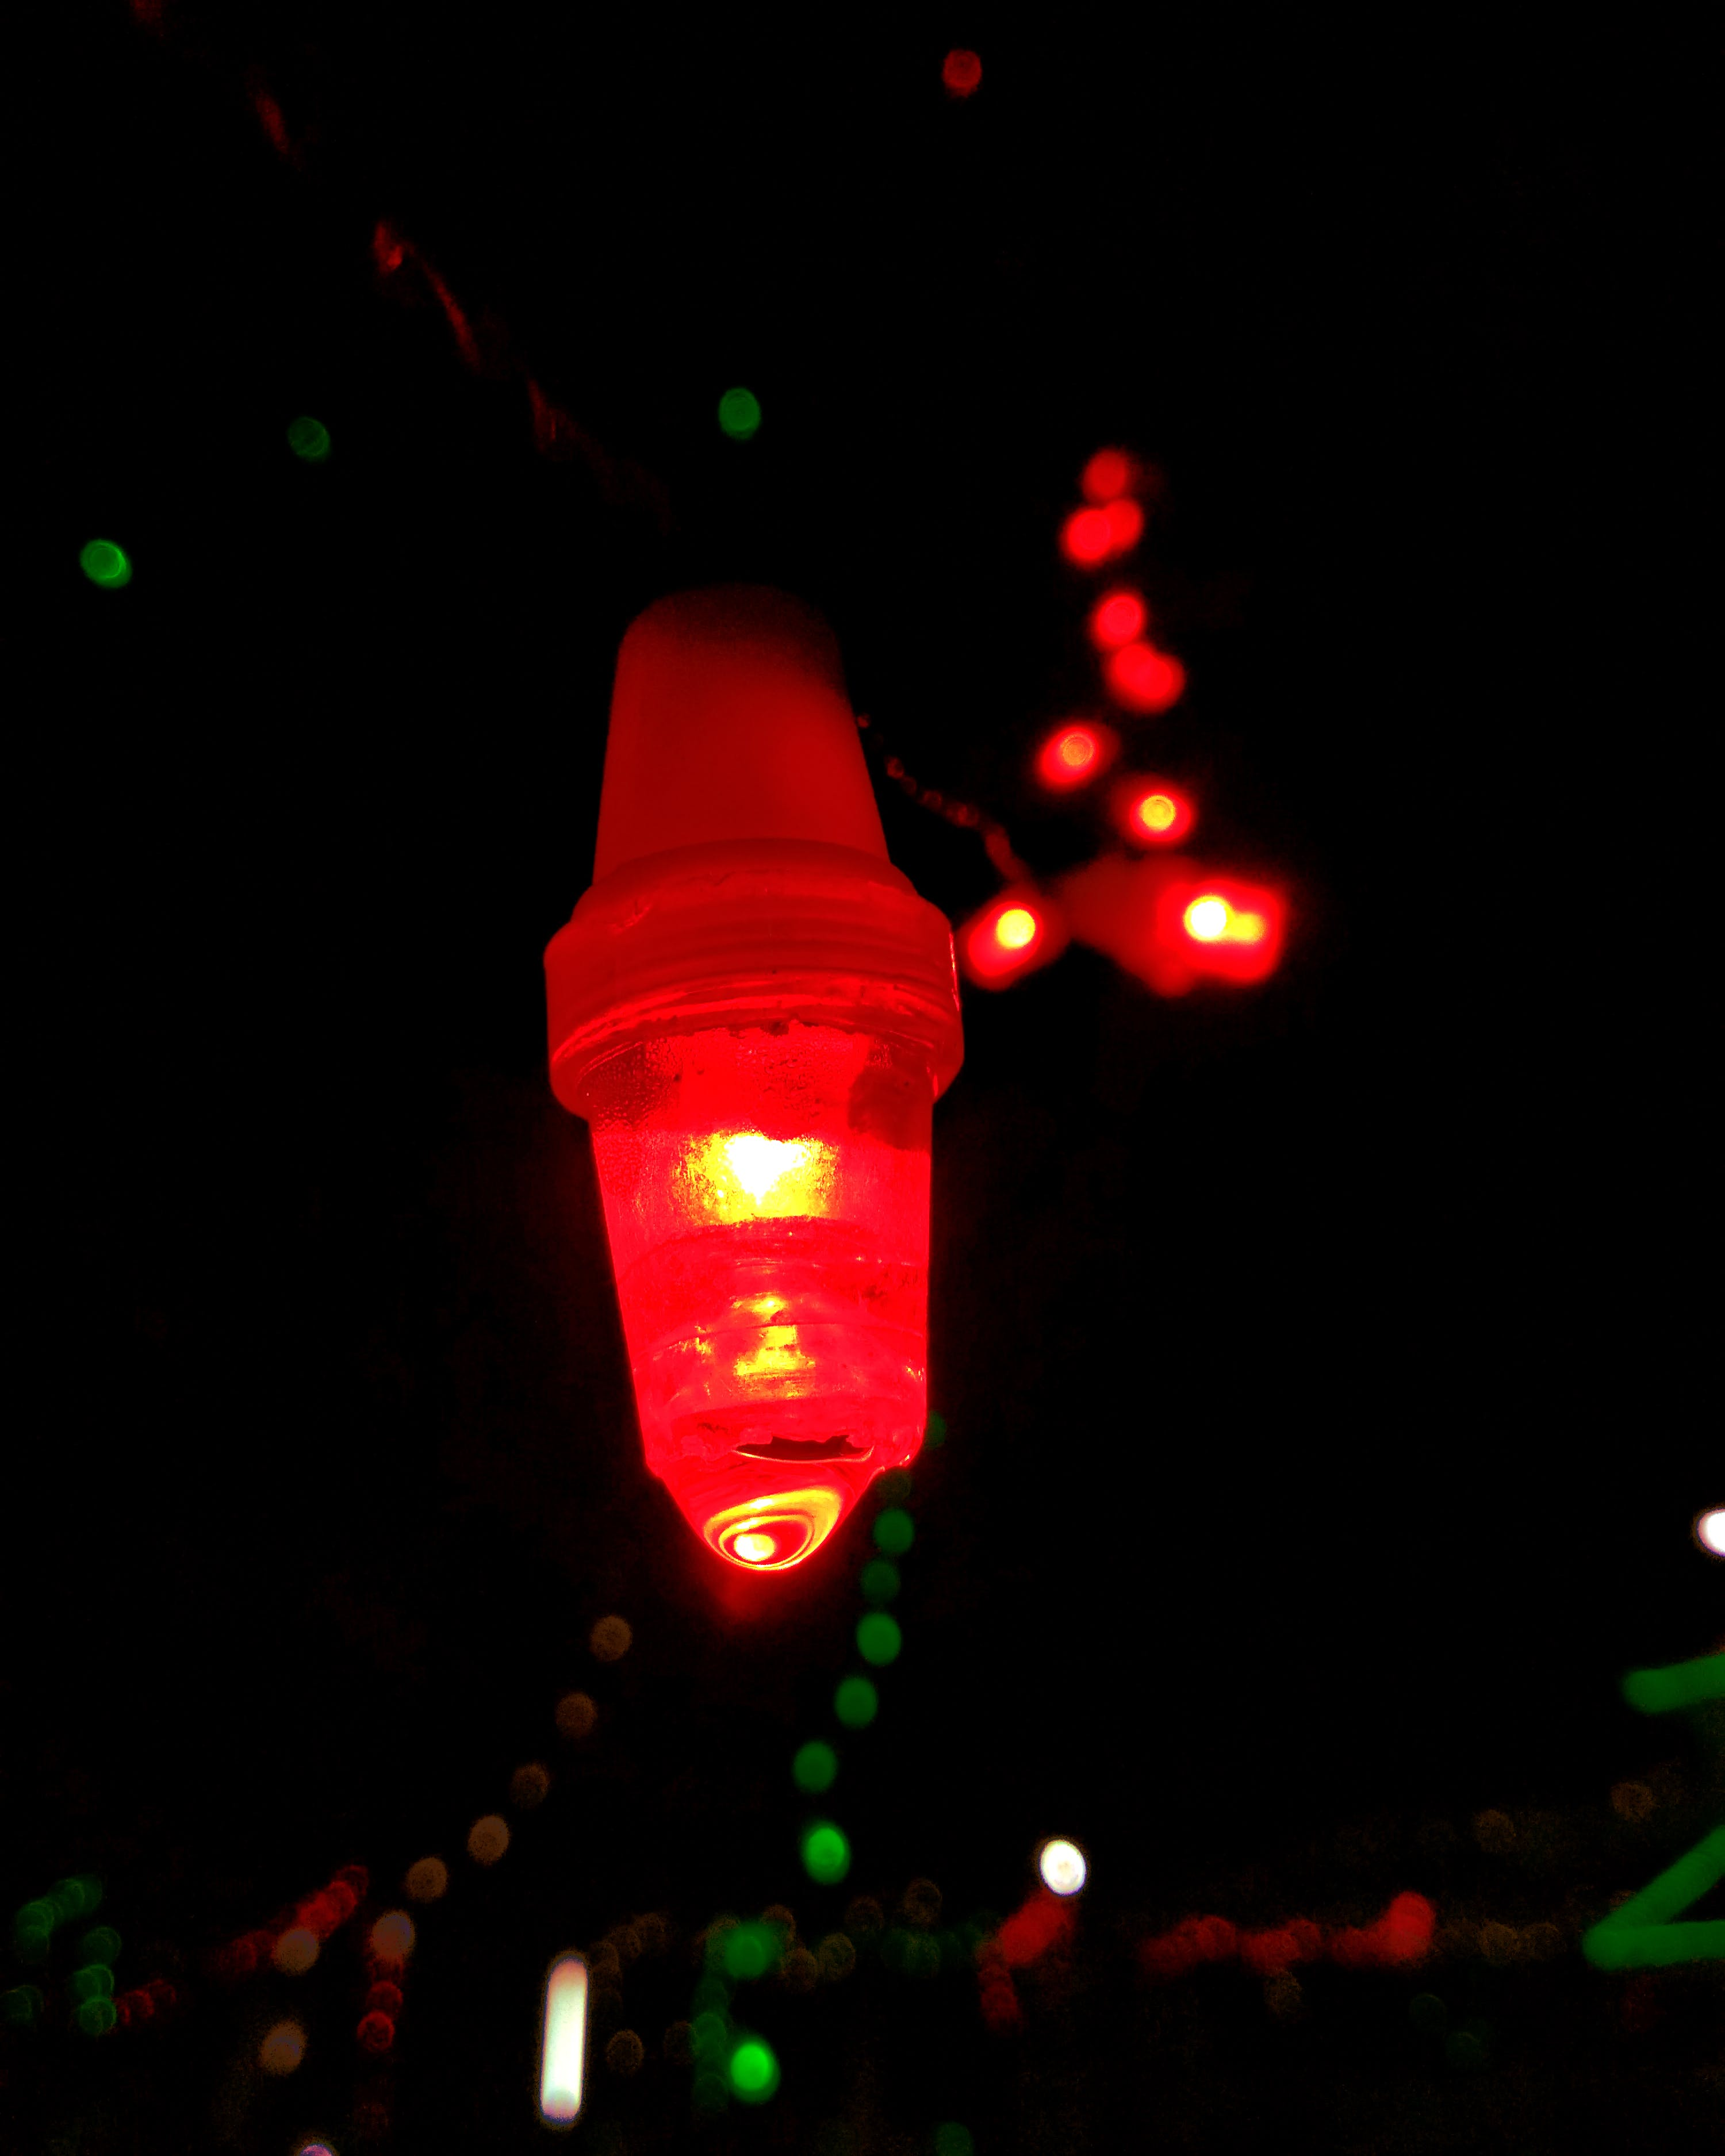 Free stock photo of lights, red bulb